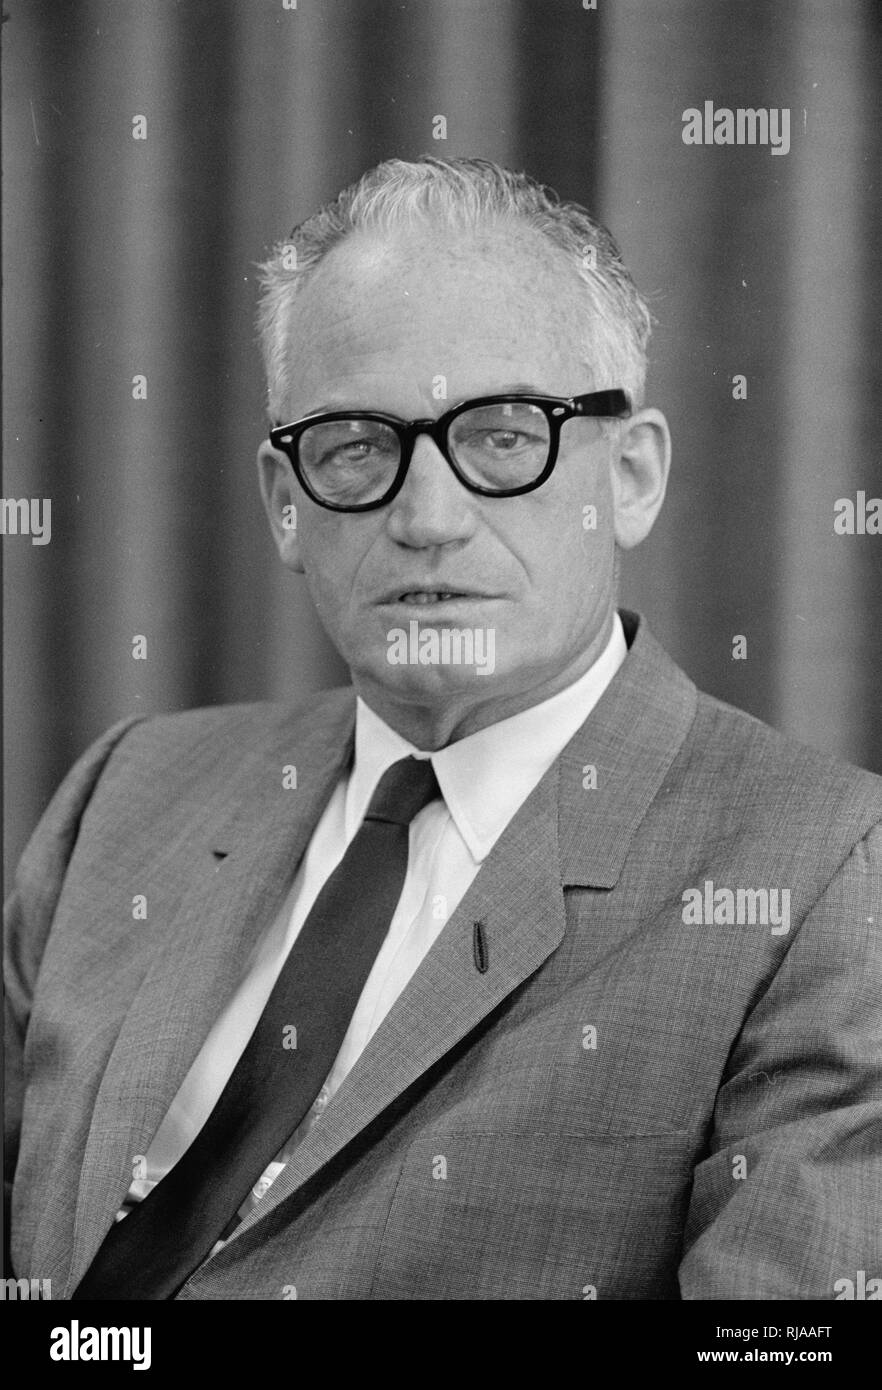 Barry Goldwater (1909 – 1998), American politician, businessman, and author. five-term United States Senator from Arizona (1953–65, 1969–87) and the Republican Party's nominee for President of the United States in the 1964 election - Stock Image